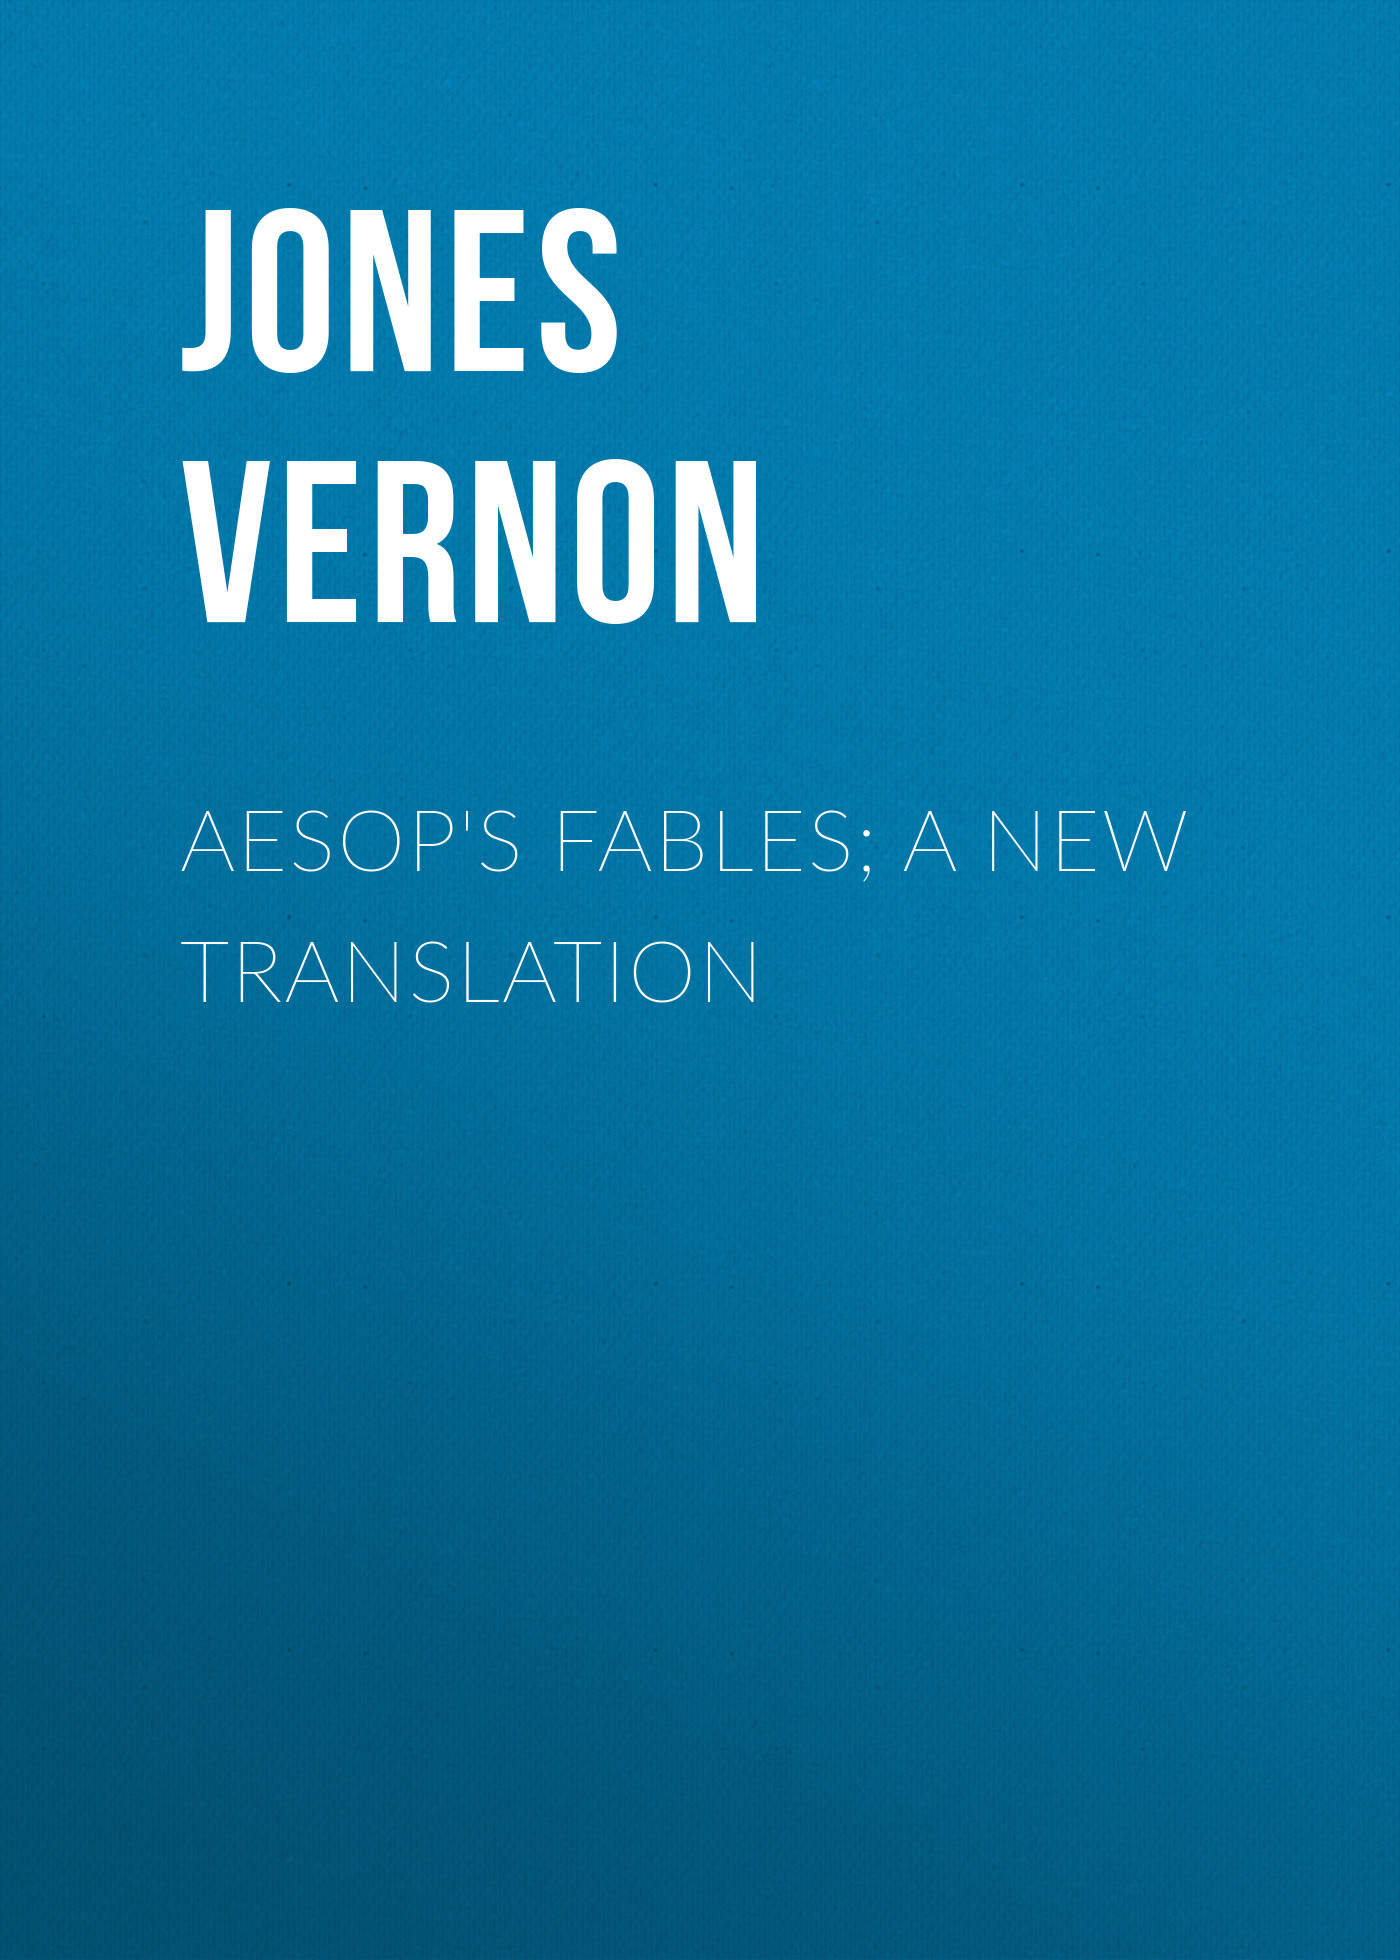 Jones Vernon Aesop's Fables; a new translation john gay fables